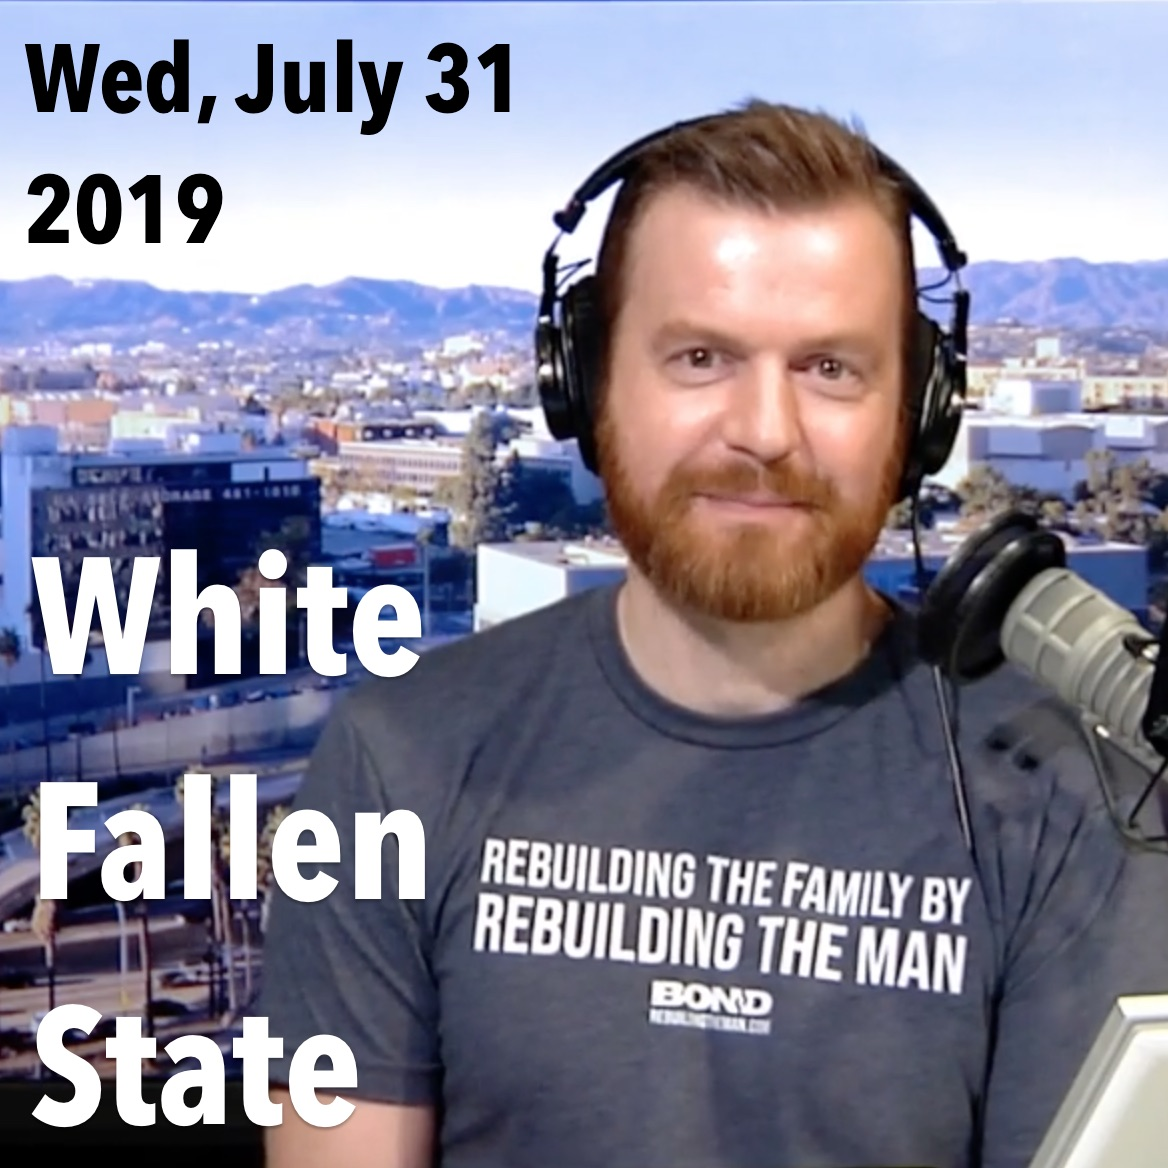 Square thumbnail from James's show on The White Fallen State, Wednesday, July 31, 2019